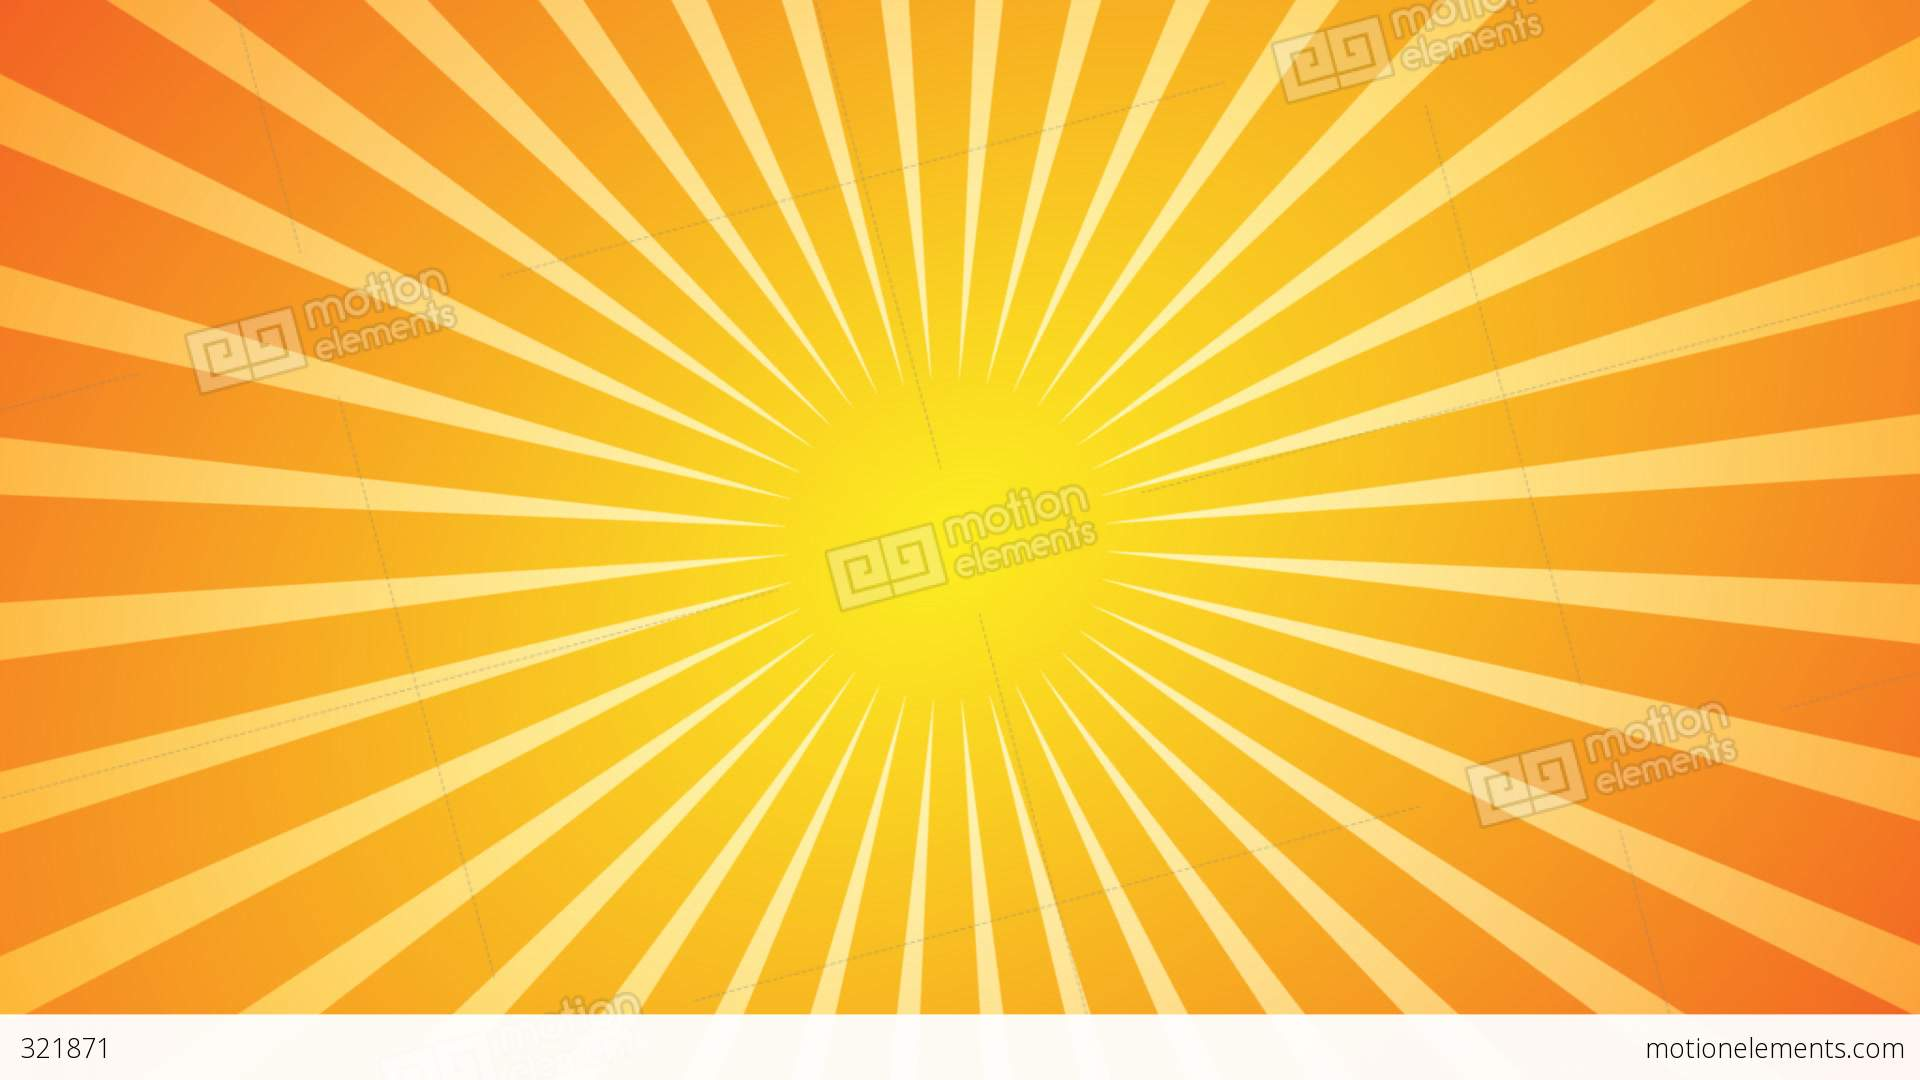 Sun Moon Stars Stock Images RoyaltyFree   Shutterstock